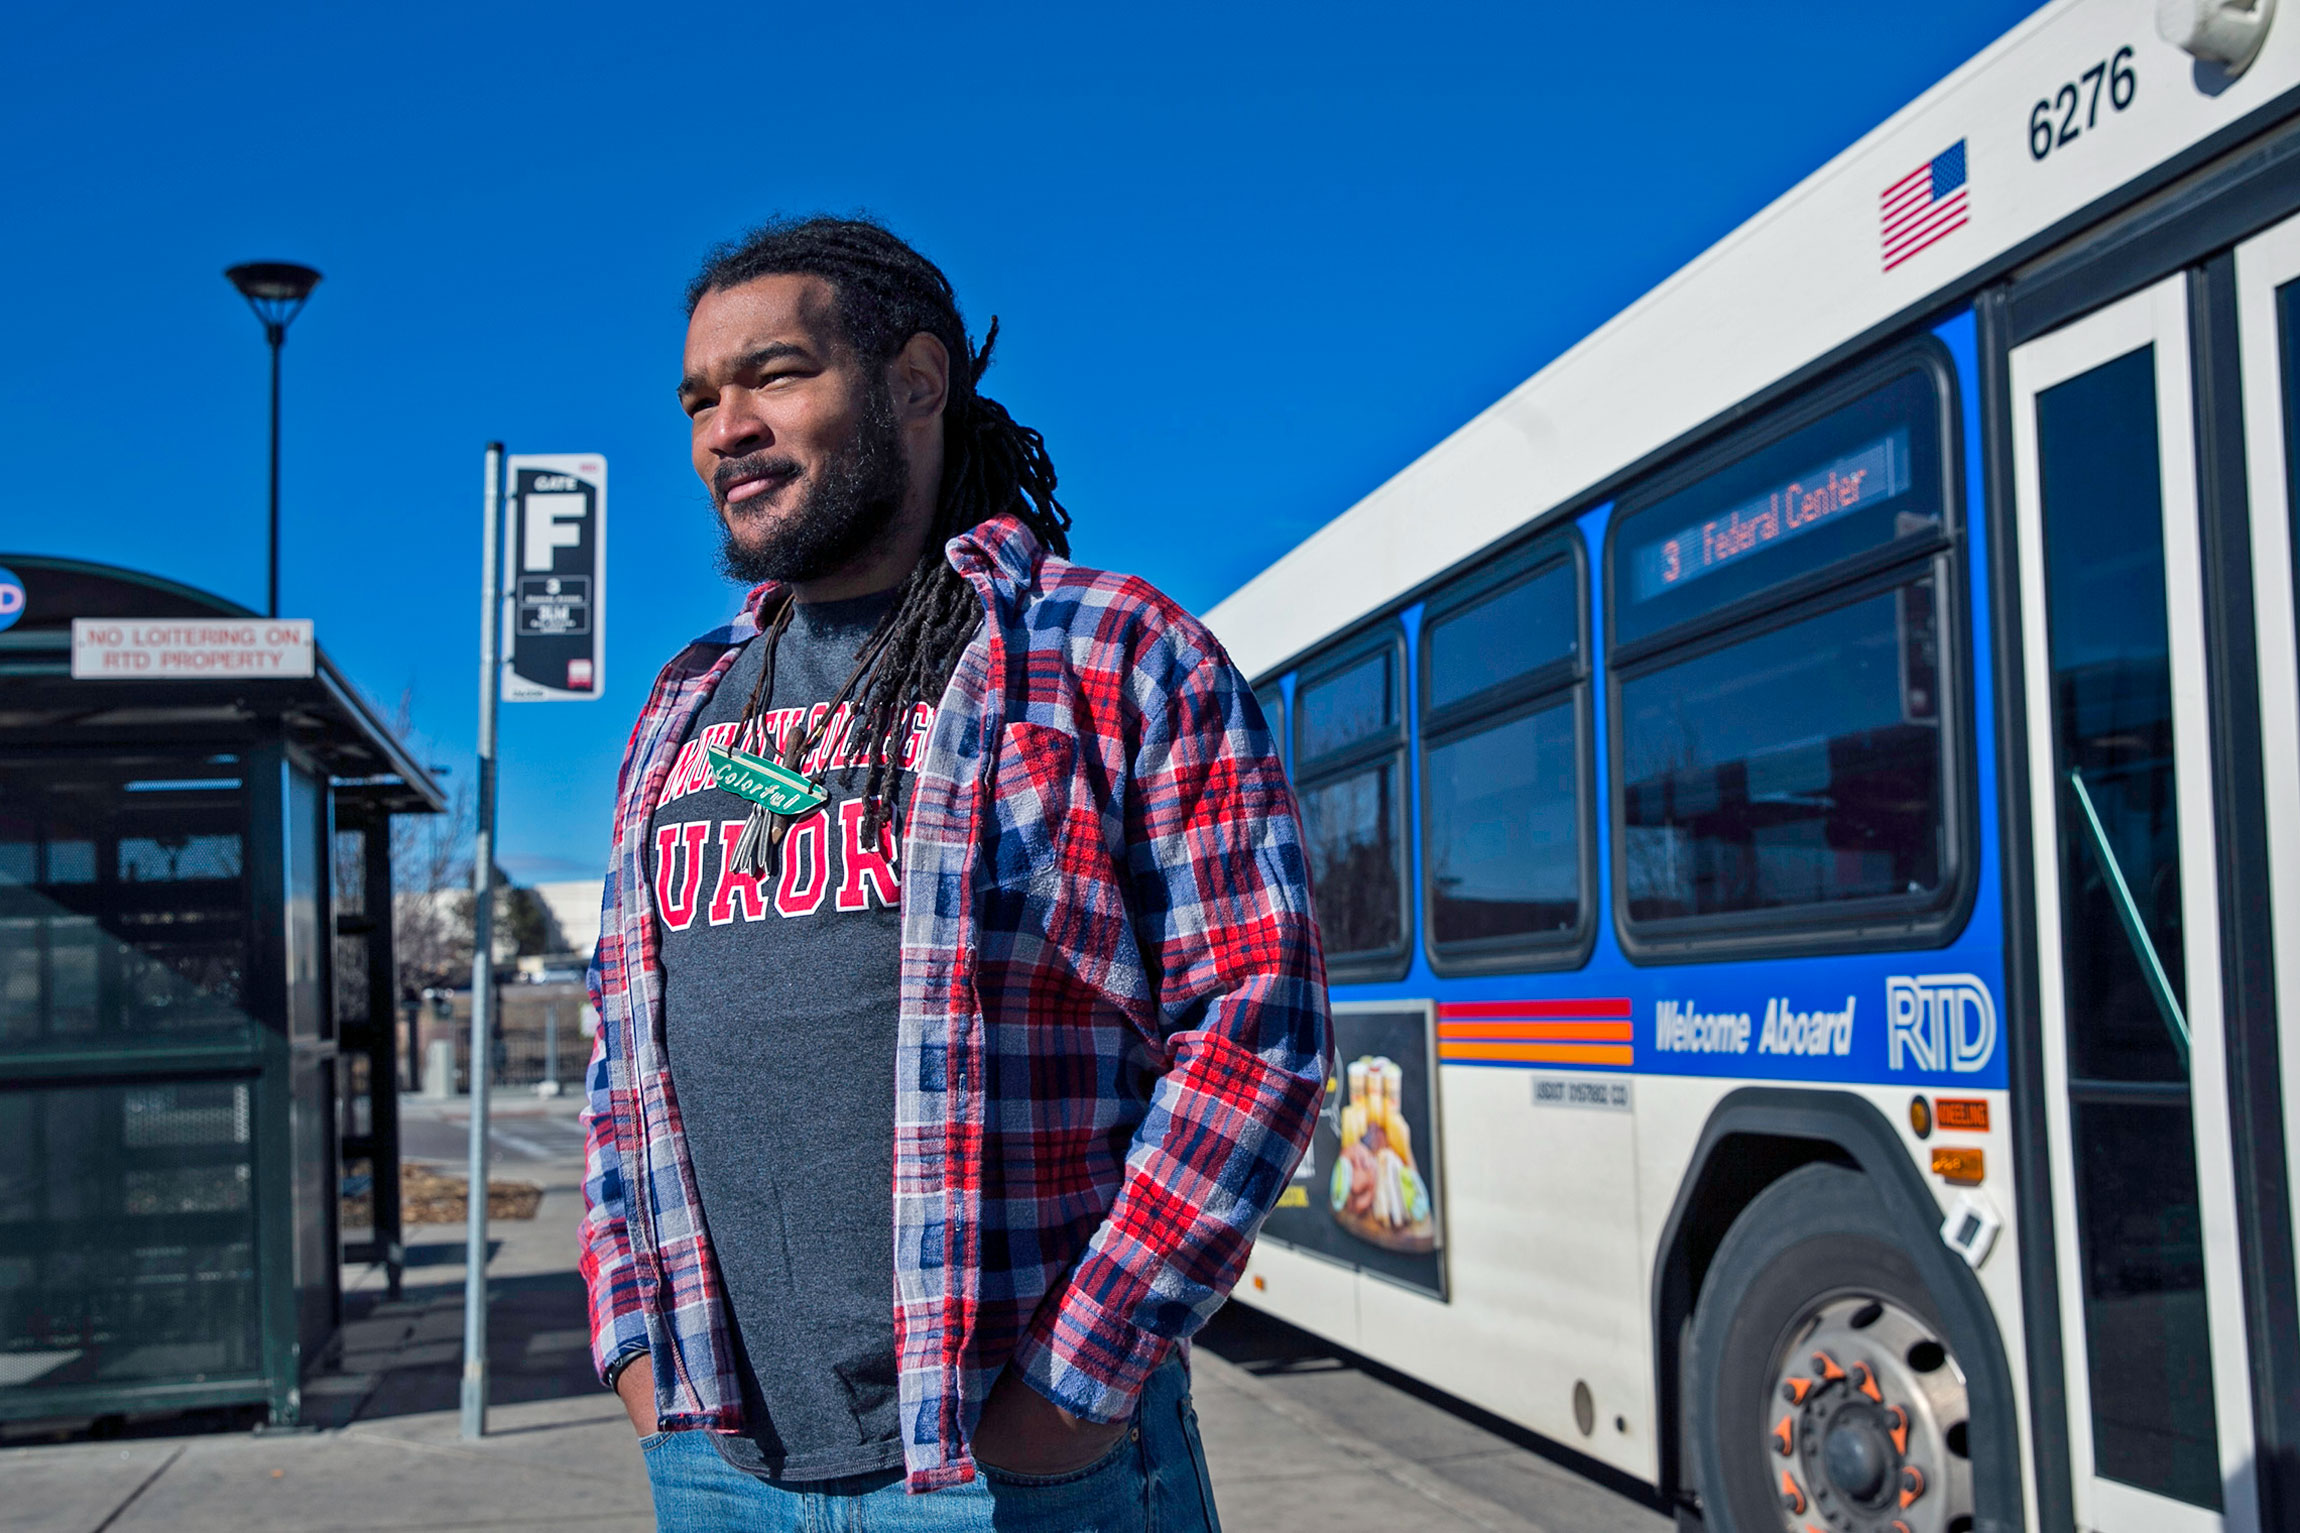 Photo: Javon Mays Poet Laureate Exit 1 | Javon and 15L Bus - CJones